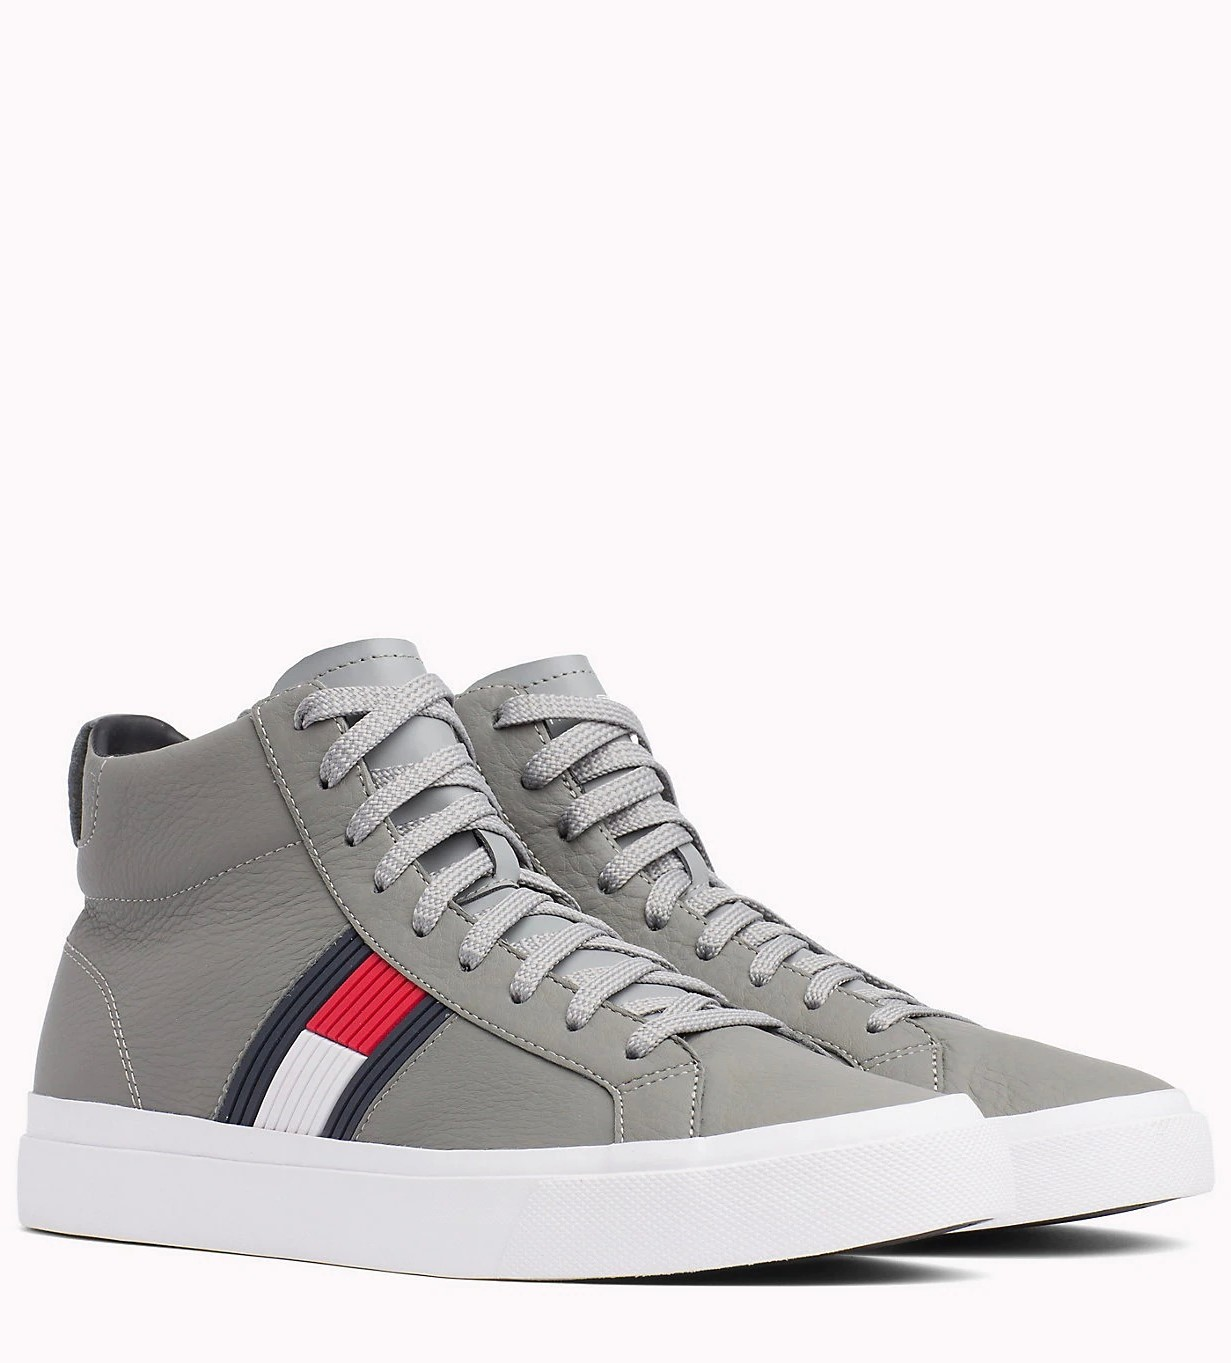 feeeac6326 Tommy Hilfiger sivé kožené unisex tenisky Flag Detail High Leather Sneaker  Light Grey - 45